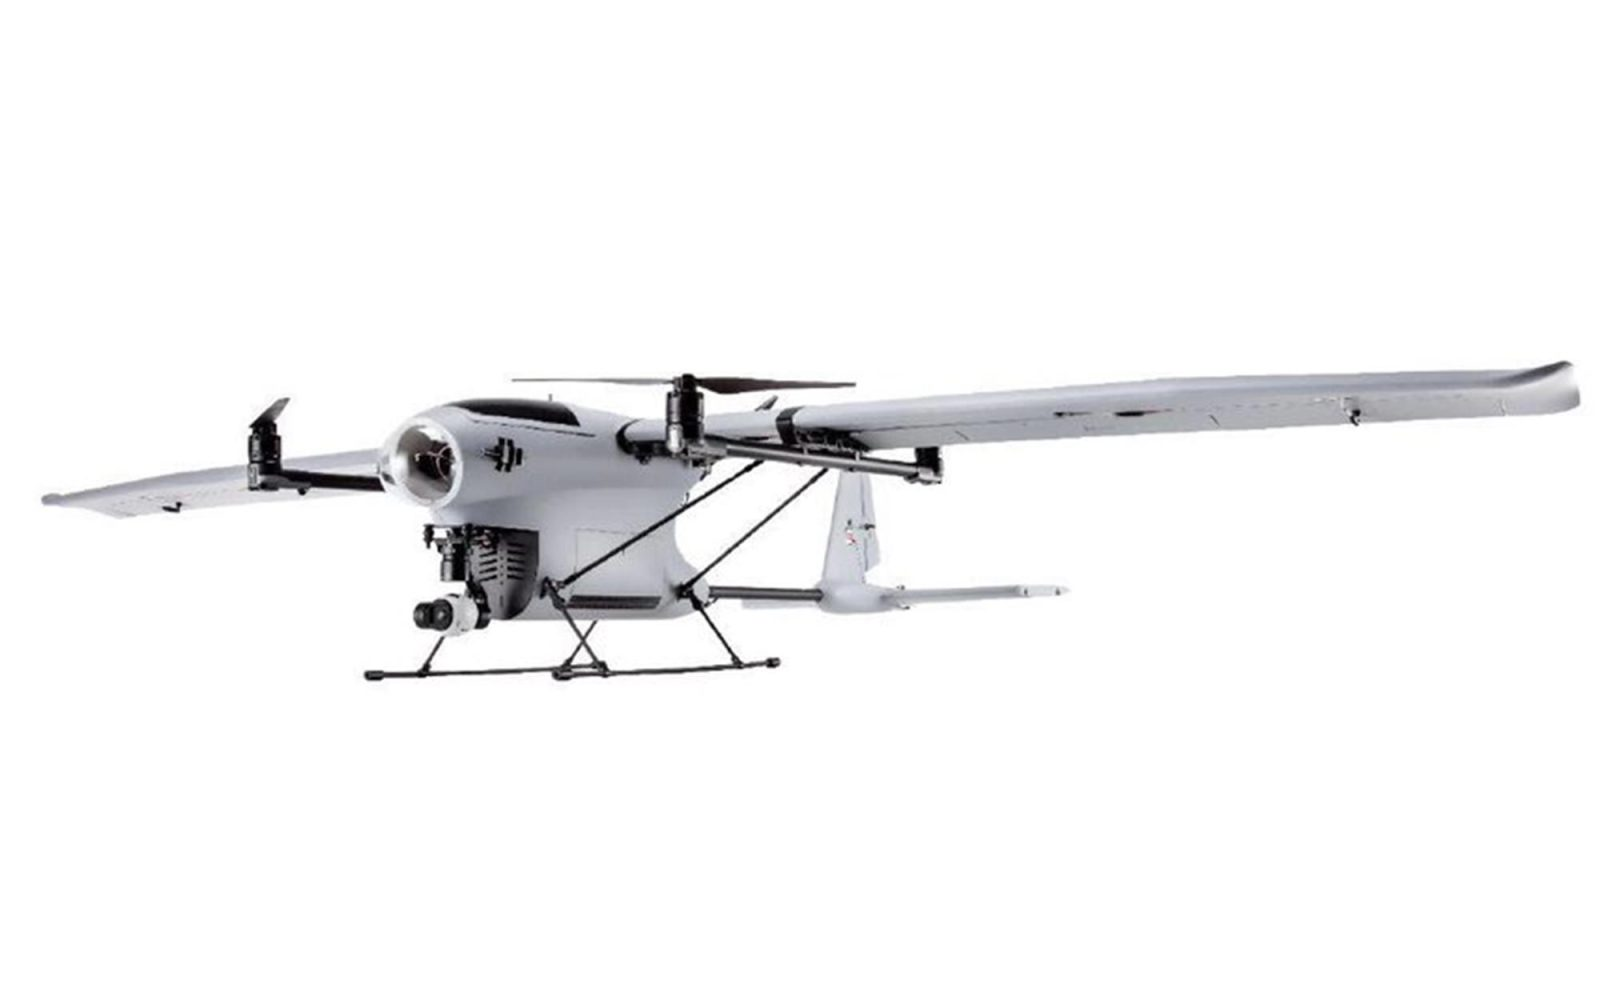 First photos and specs appear of DJI's VTOL fixed-wing